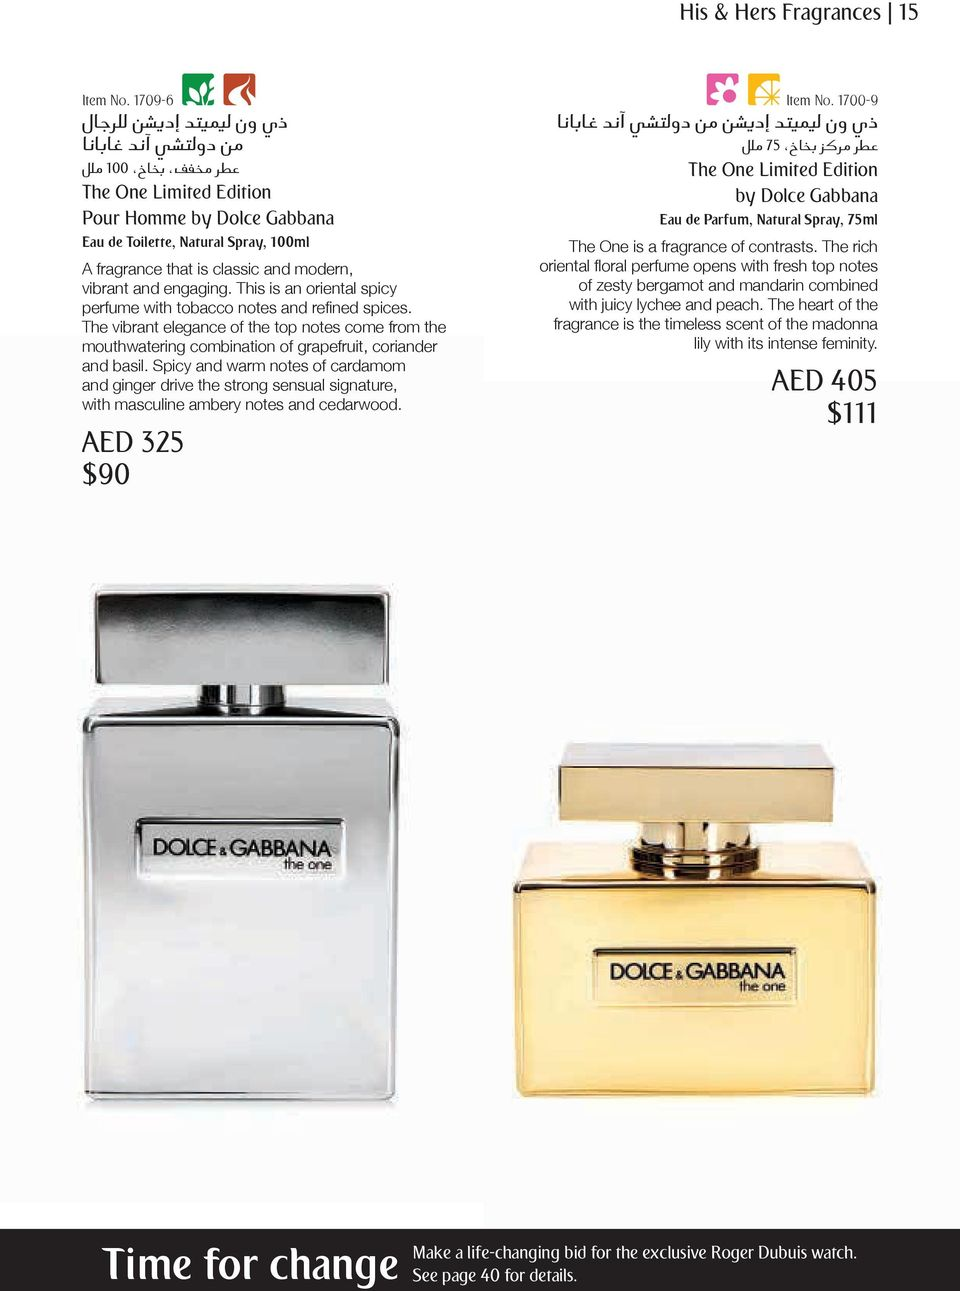 72509e876 This is an oriental spicy perfume with tobacco notes and